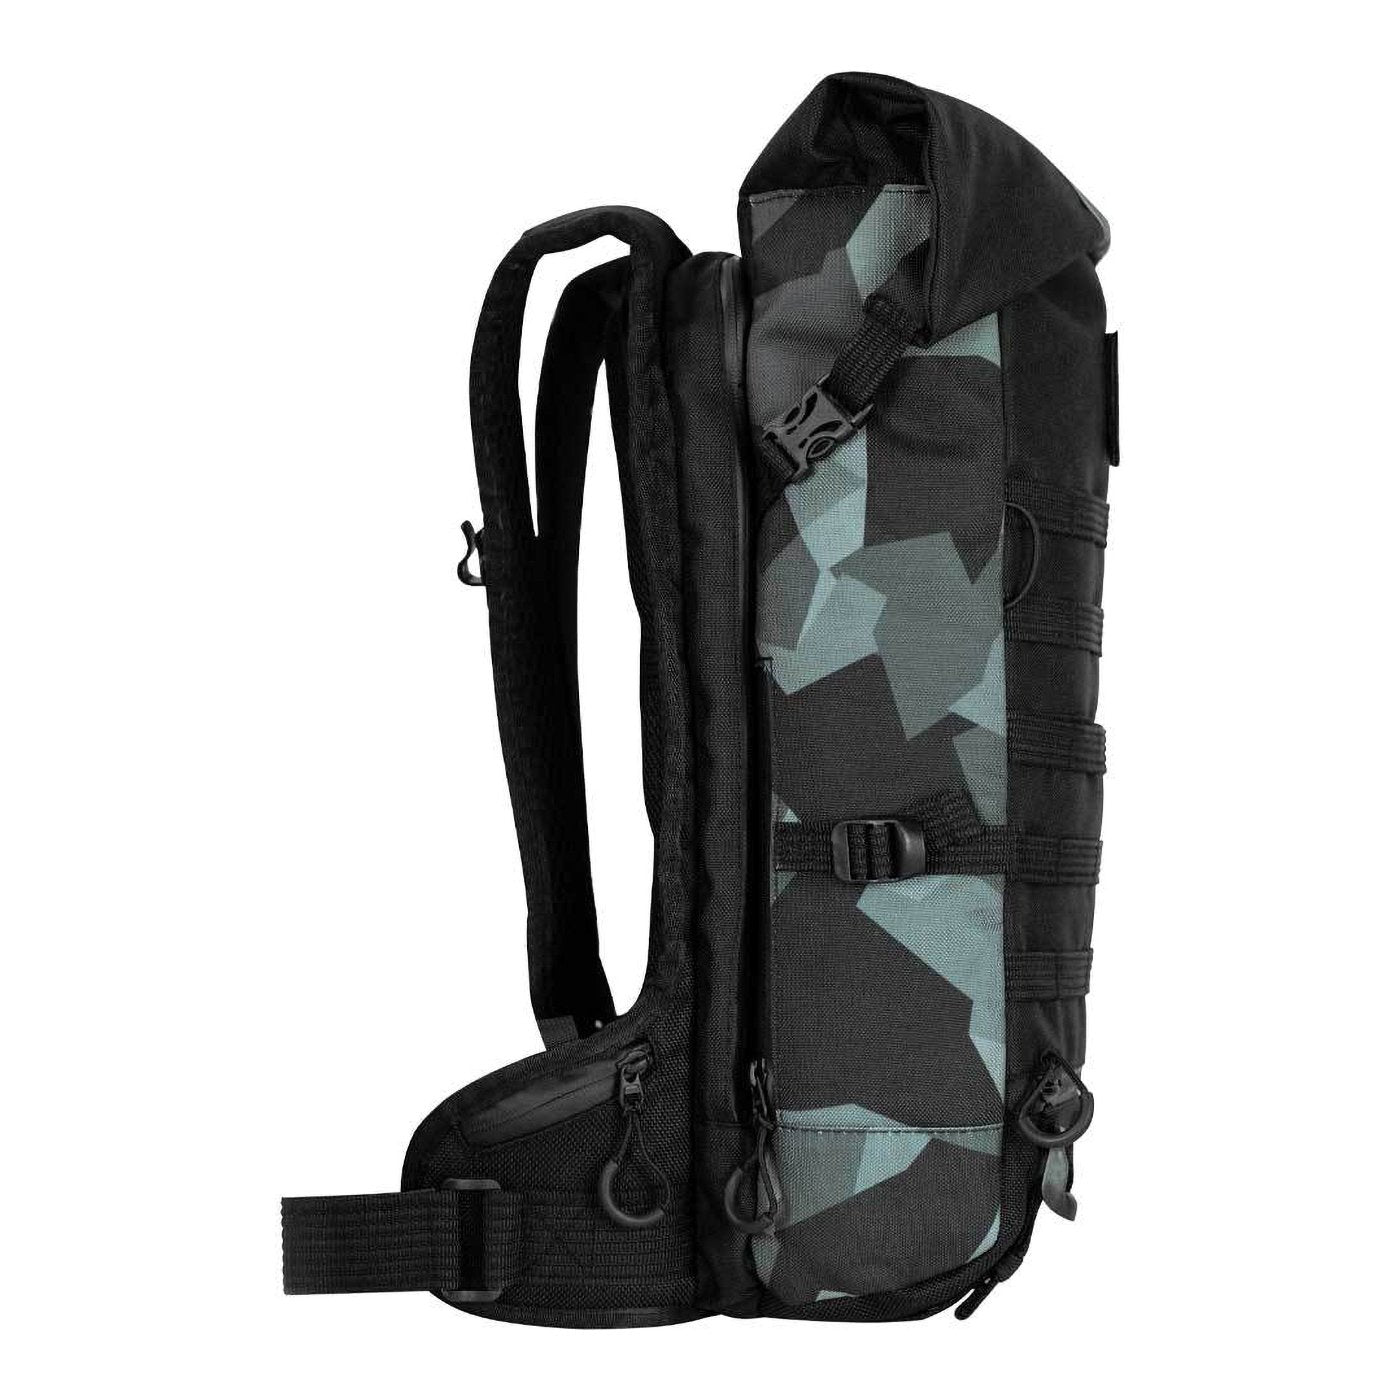 LAB.94 Ride Pack, DOPP Bag & Reservoir